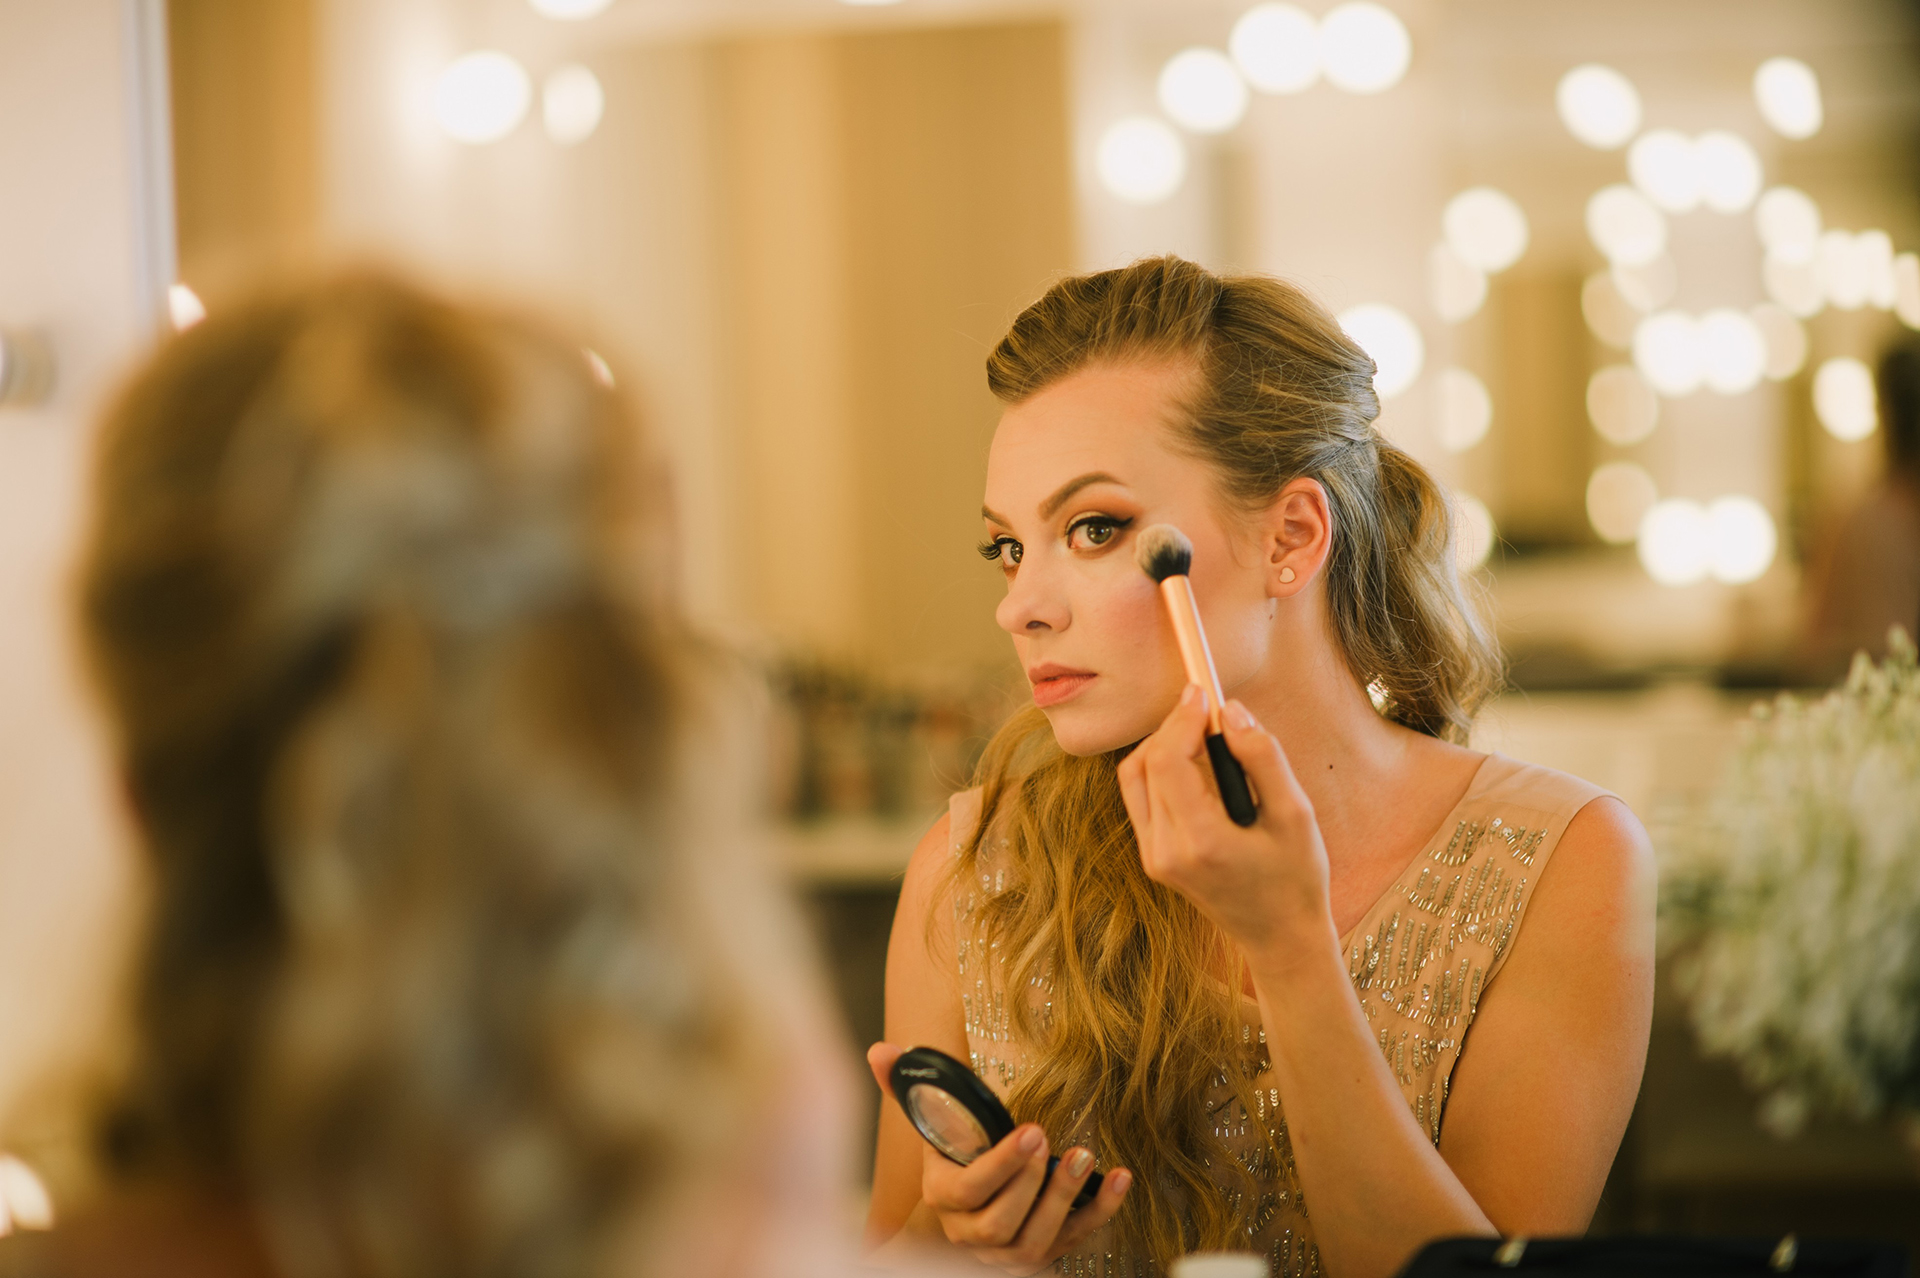 wedding-getting-ready-makeup-hair-radu-benjamin (2)